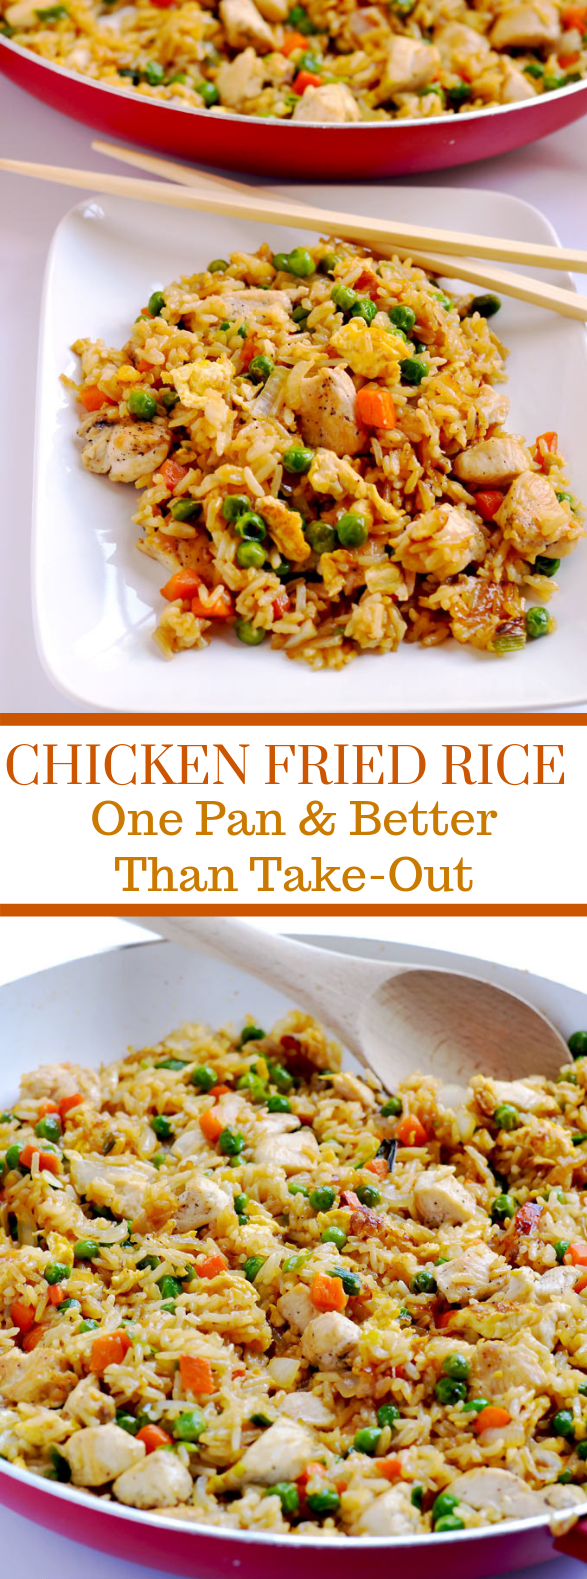 Chicken Fried Rice {better than take-out!} #dinner #weeknight images